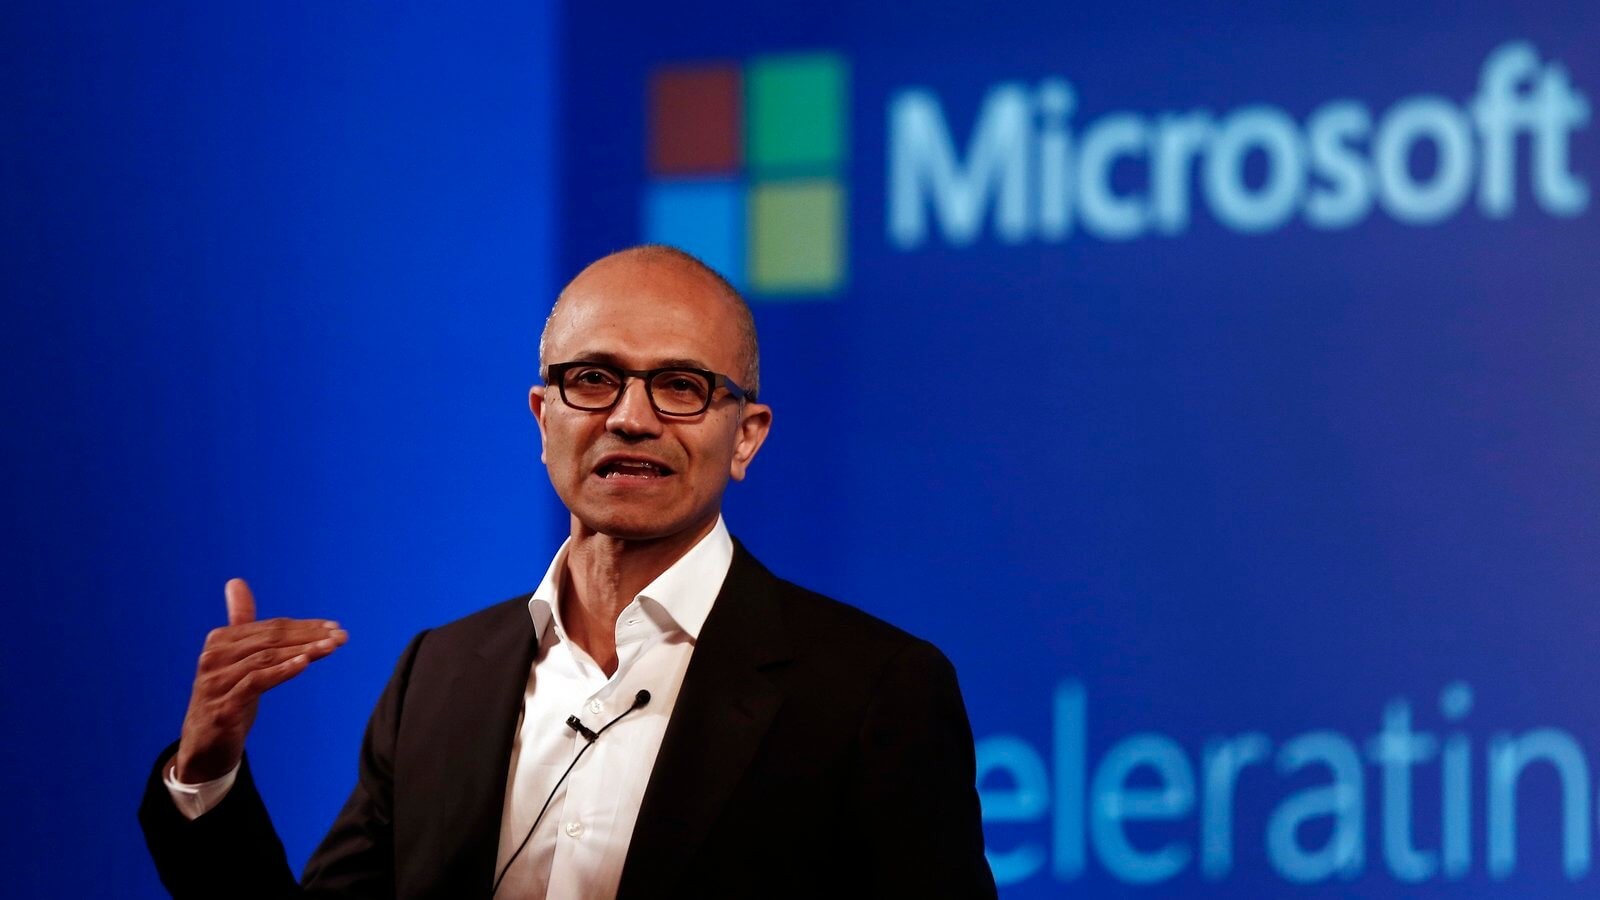 Microsoft CEO Nadella addresses the media during an event in New Delhi